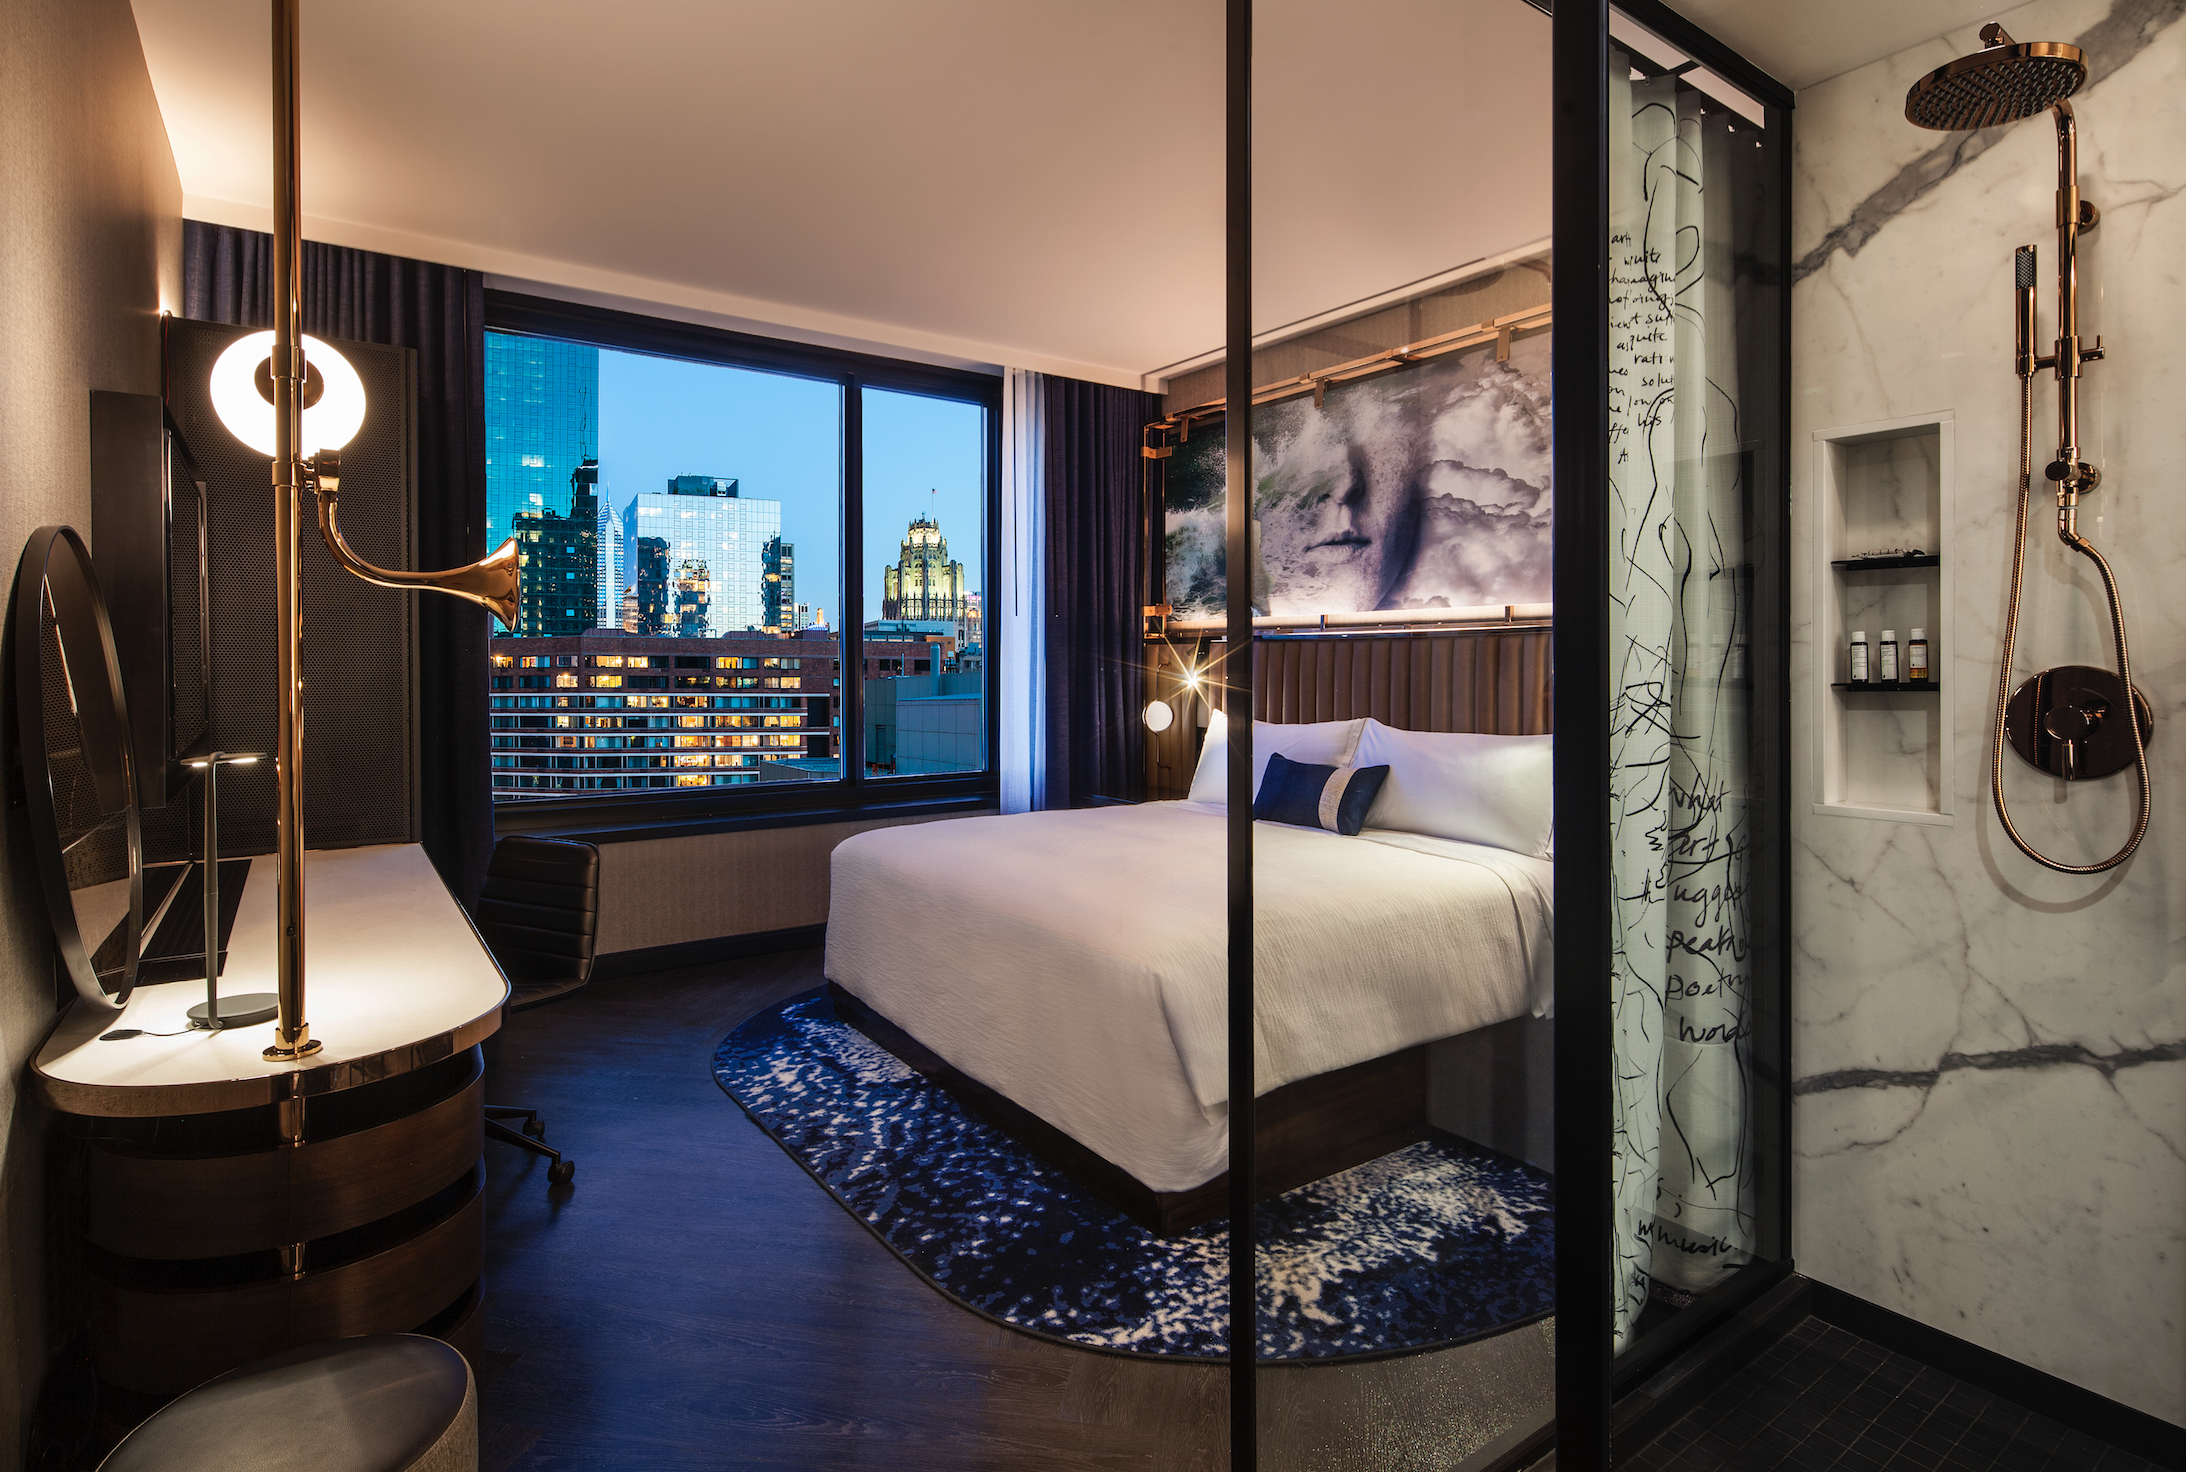 Chicago Boutique Hotel With Robot Room Service